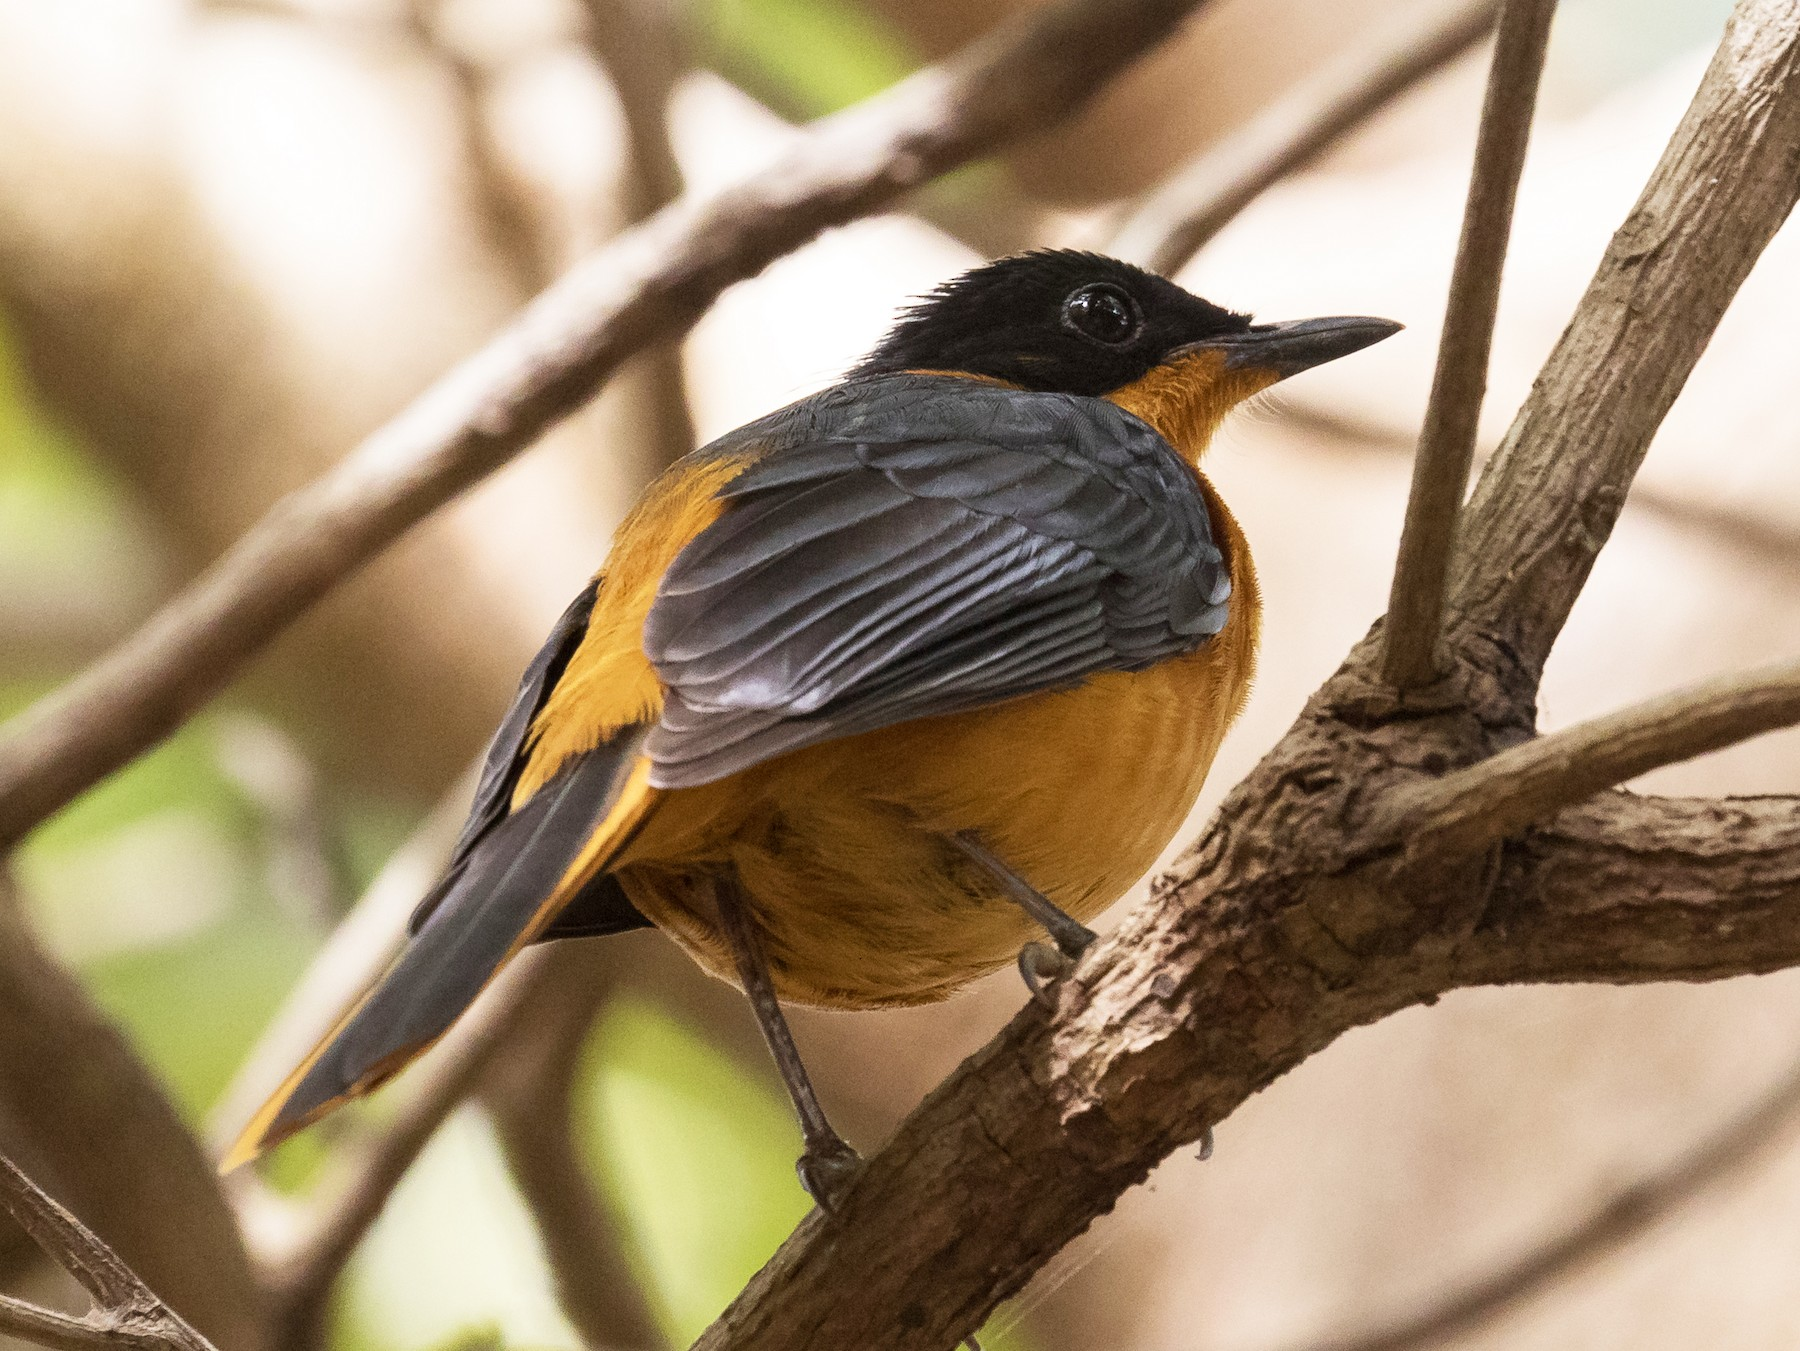 Snowy-crowned Robin-Chat - Peter Kennerley